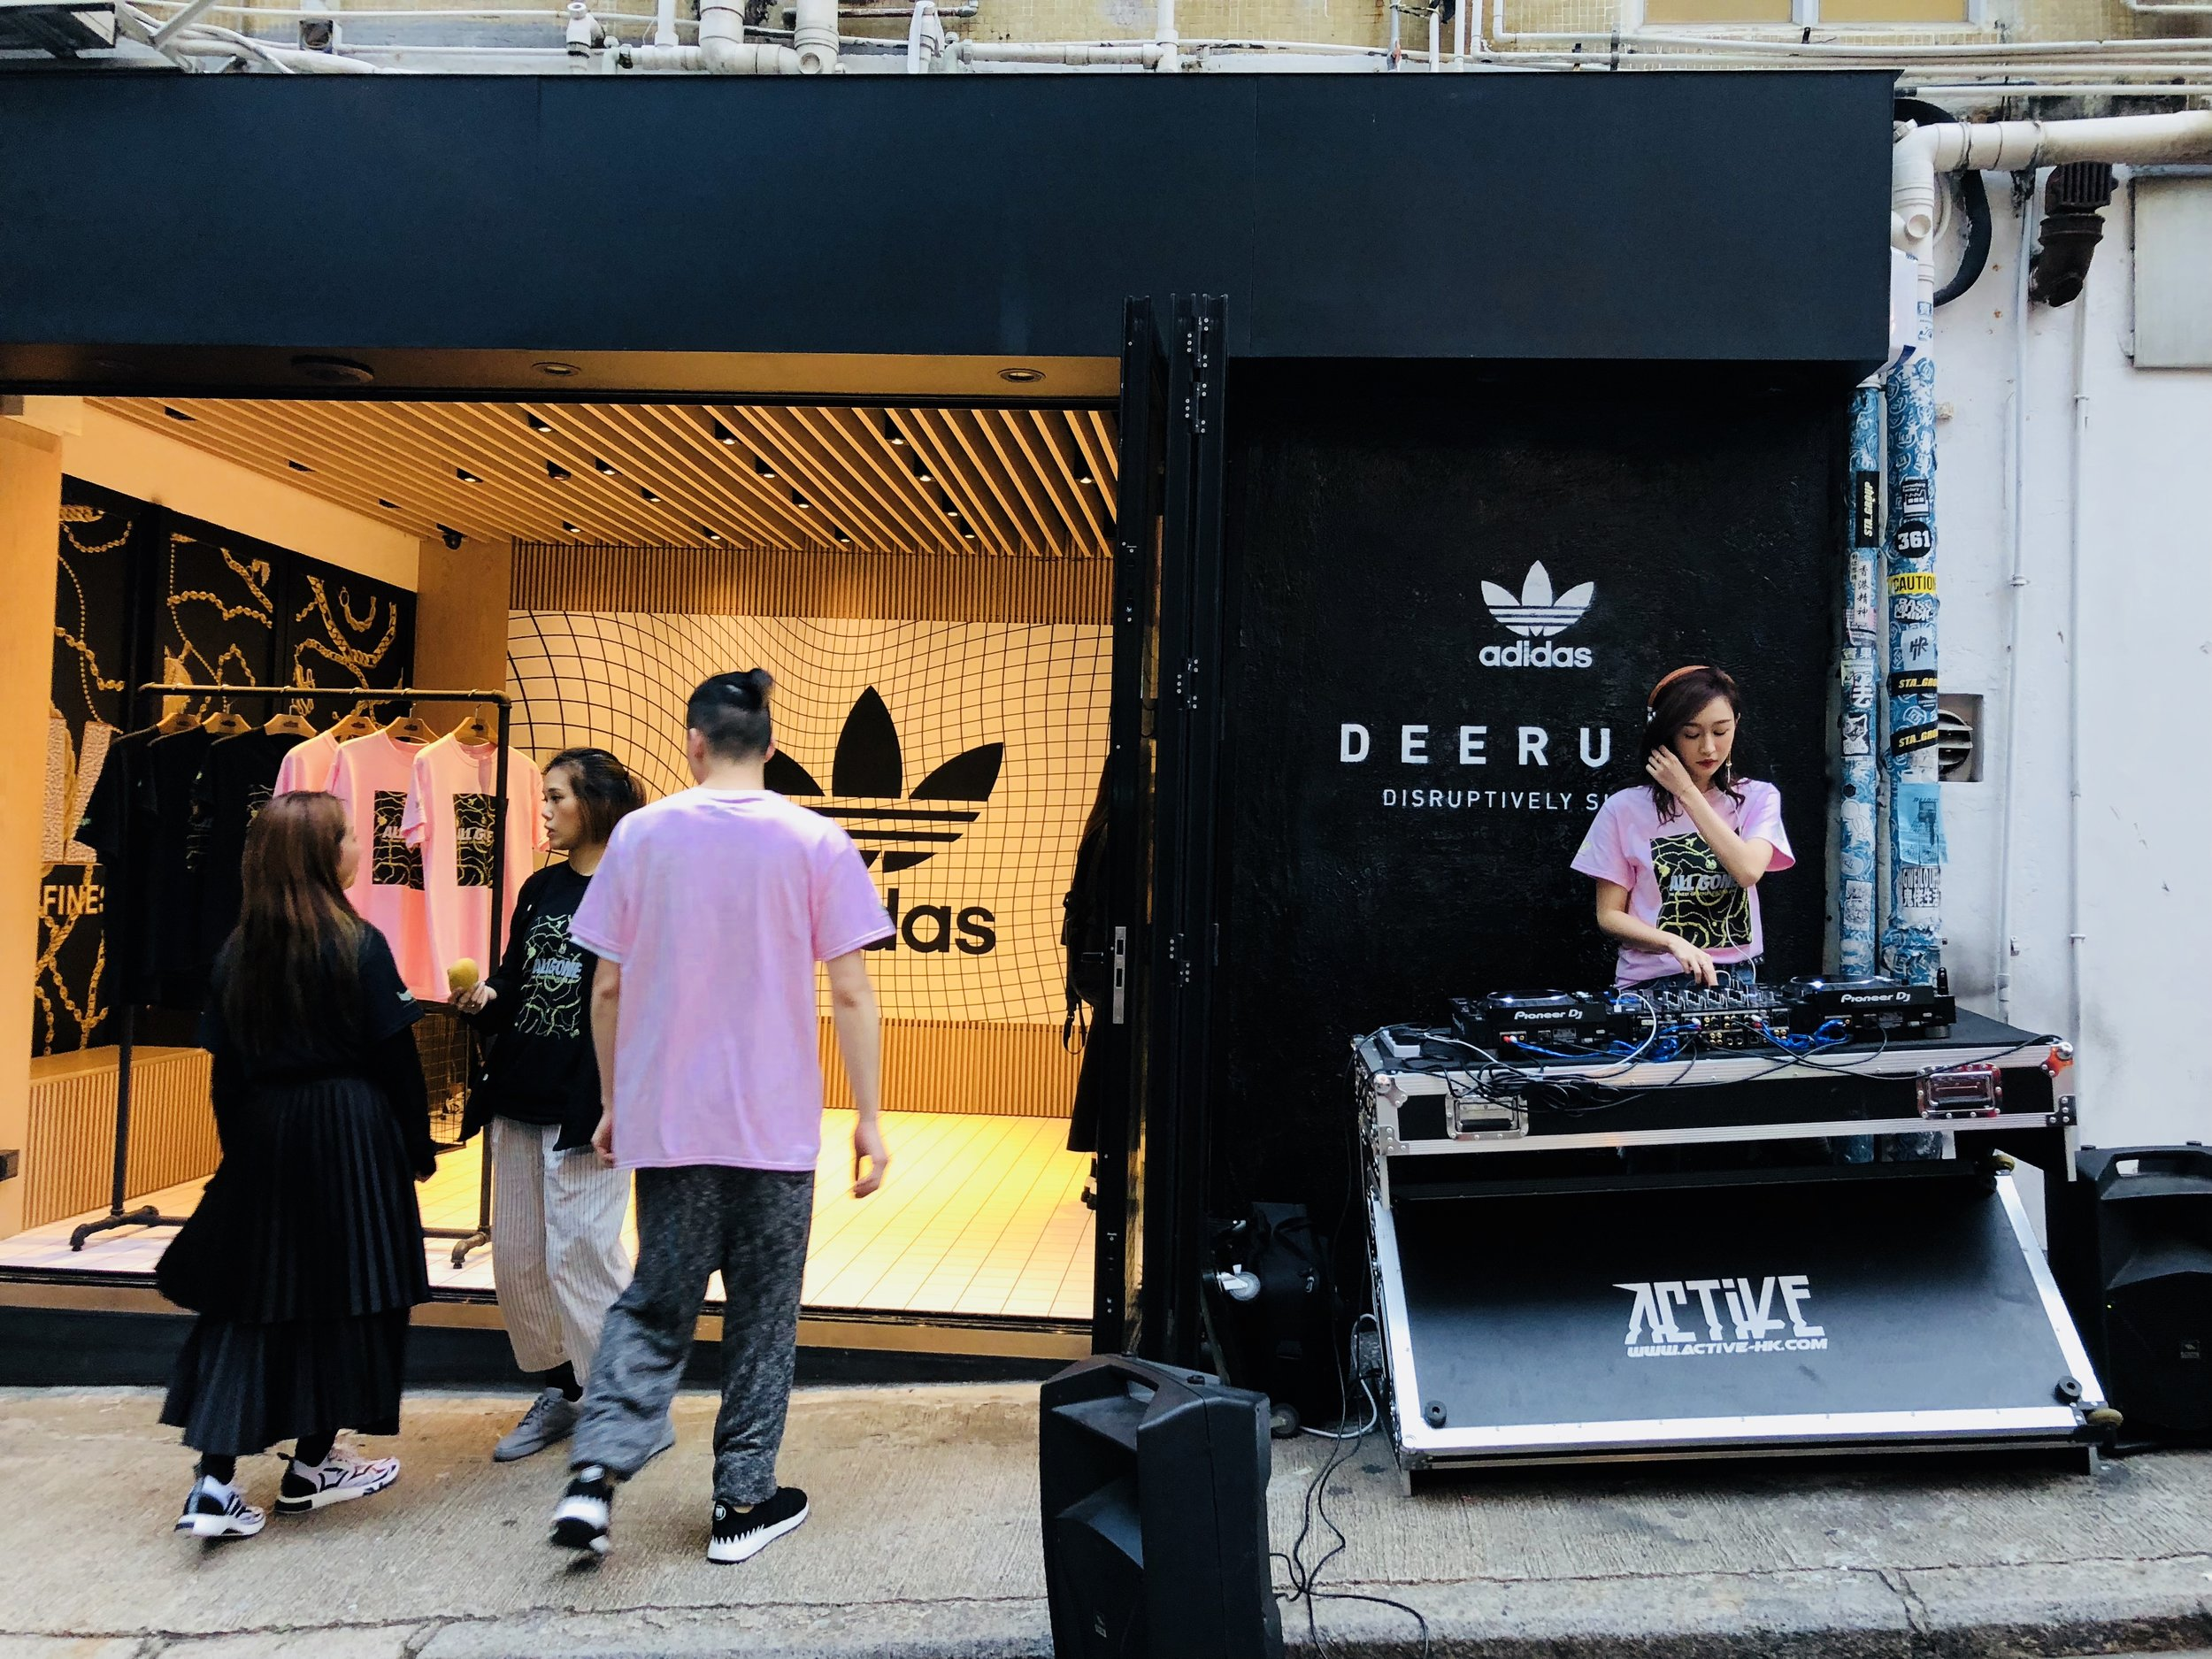 Cool shops with DJ evenings